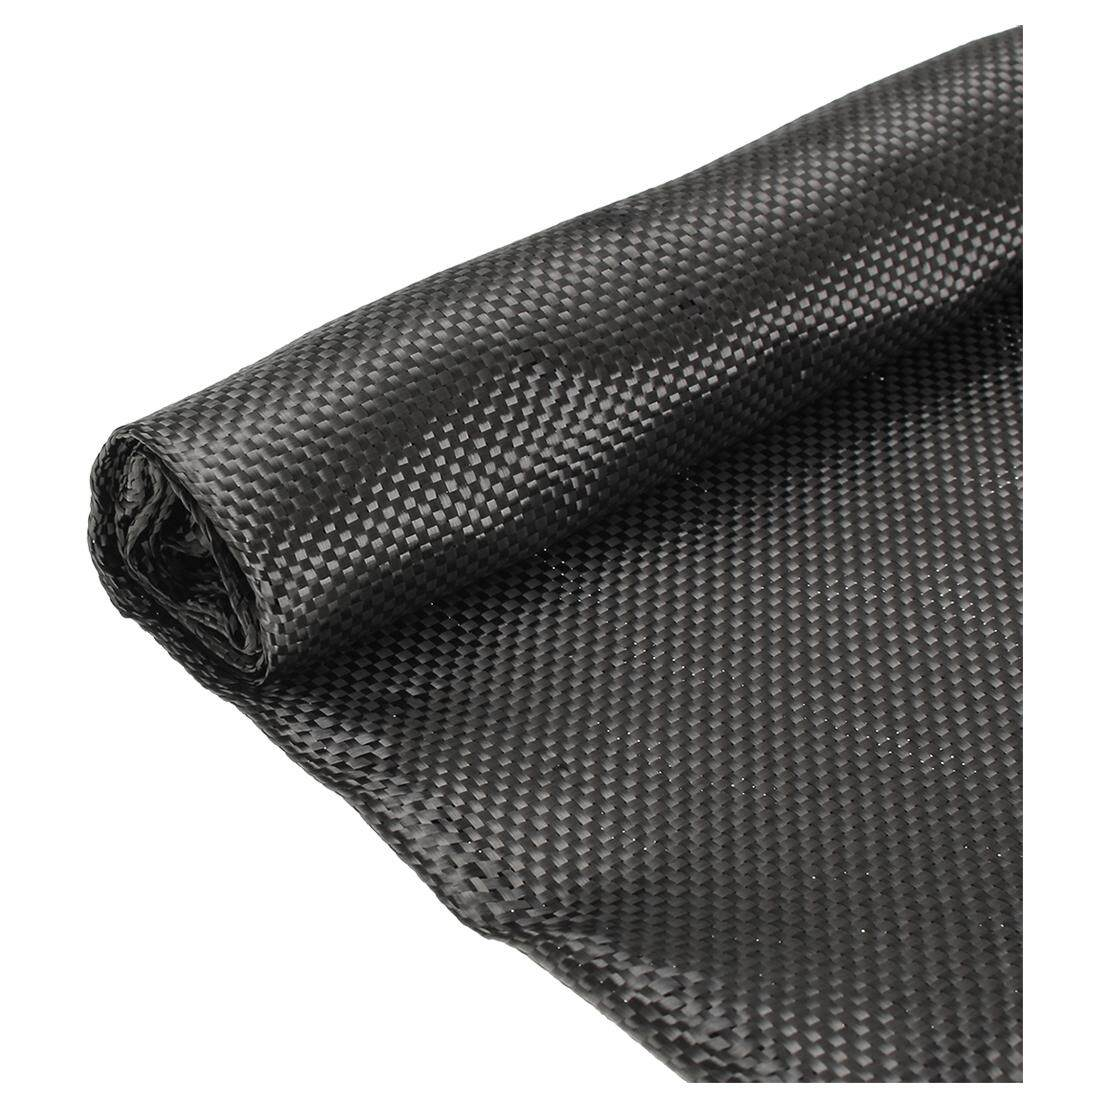 Motorcycle Rim Tape For Sale Reflective Online Brands Automotive Wire Harness Wrapping 3k Real Plain Weave Carbon Fiber Cloth Fabric 8inch X 12inch Intl